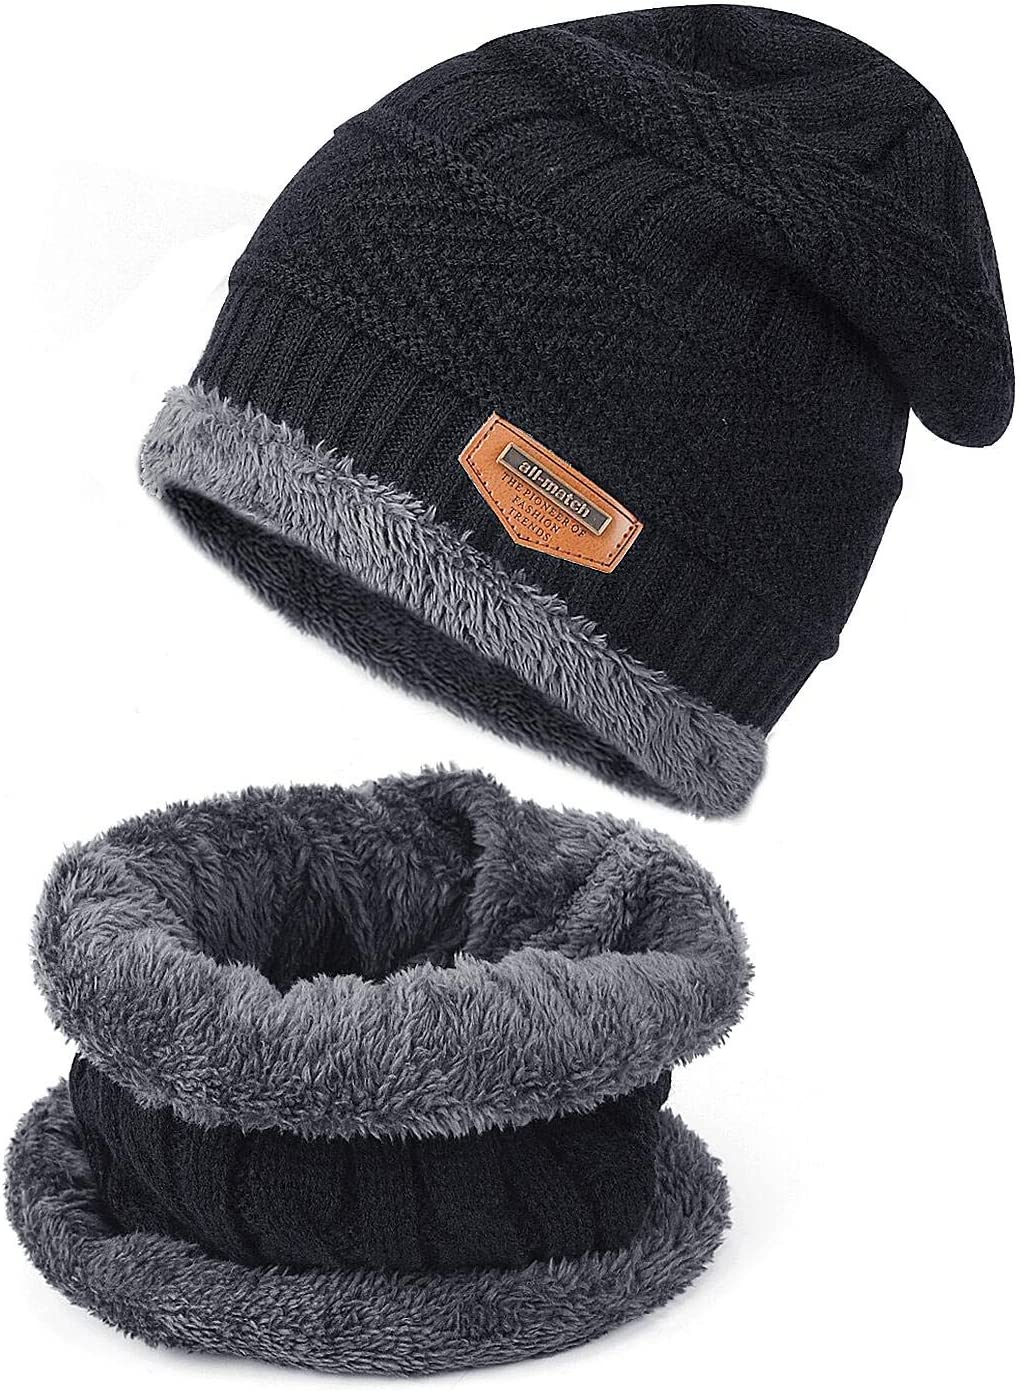 TAGVO Winter Beanie Hat Scarf Set Super Soft Fleece Inner Lining Great Warm Stretchy Knit Beanie Cap Elastic Neck Warmer Snugly Fit for Women Ladies Girls Boys Adults Kids